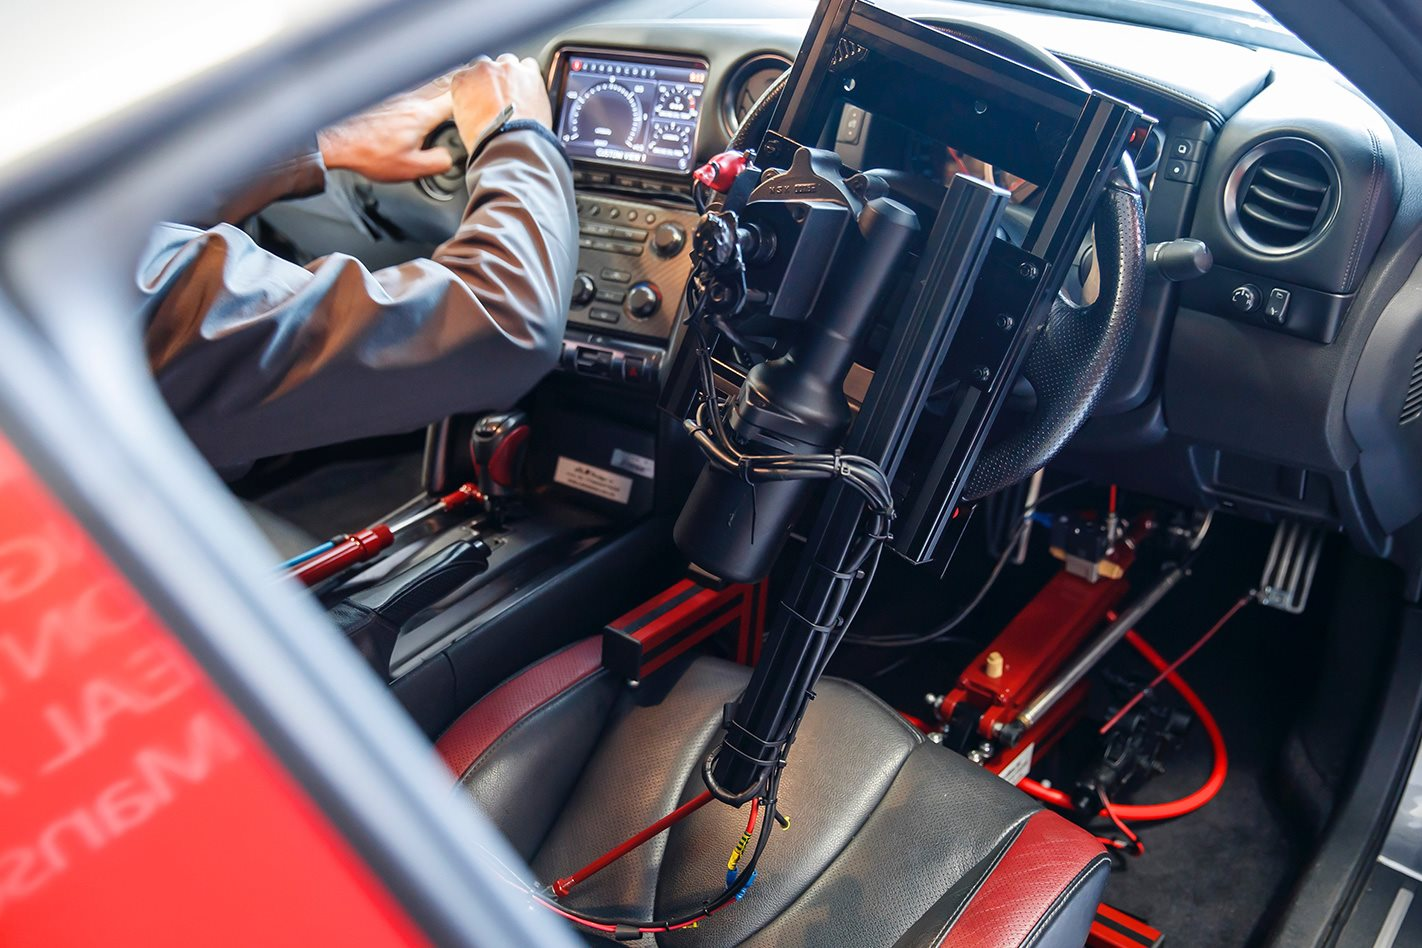 Nissan GT-R/C is a racecar you drive with a PlayStation controller